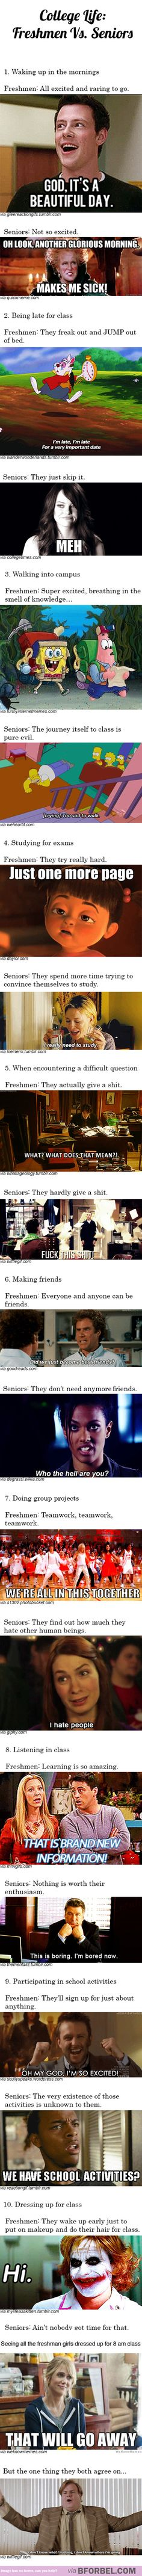 College life: Freshmen vs. seniors. I'm in that in between, I still really care, but I really just don't wanna....lol